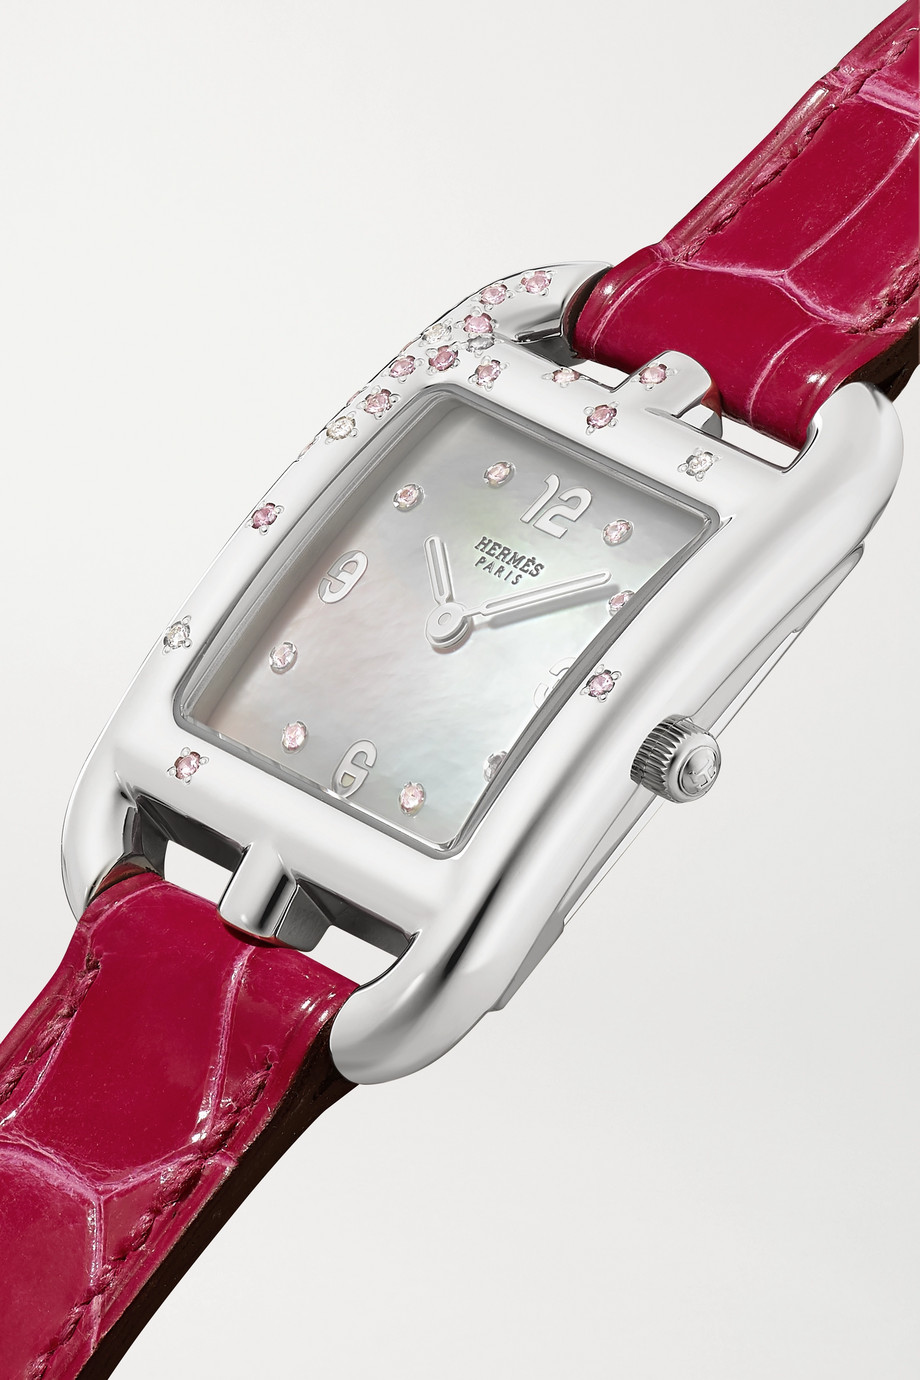 Hermès Timepieces Cape Cod Double Tour 23mm small stainless steel, alligator, mother-of-pearl and diamond watch